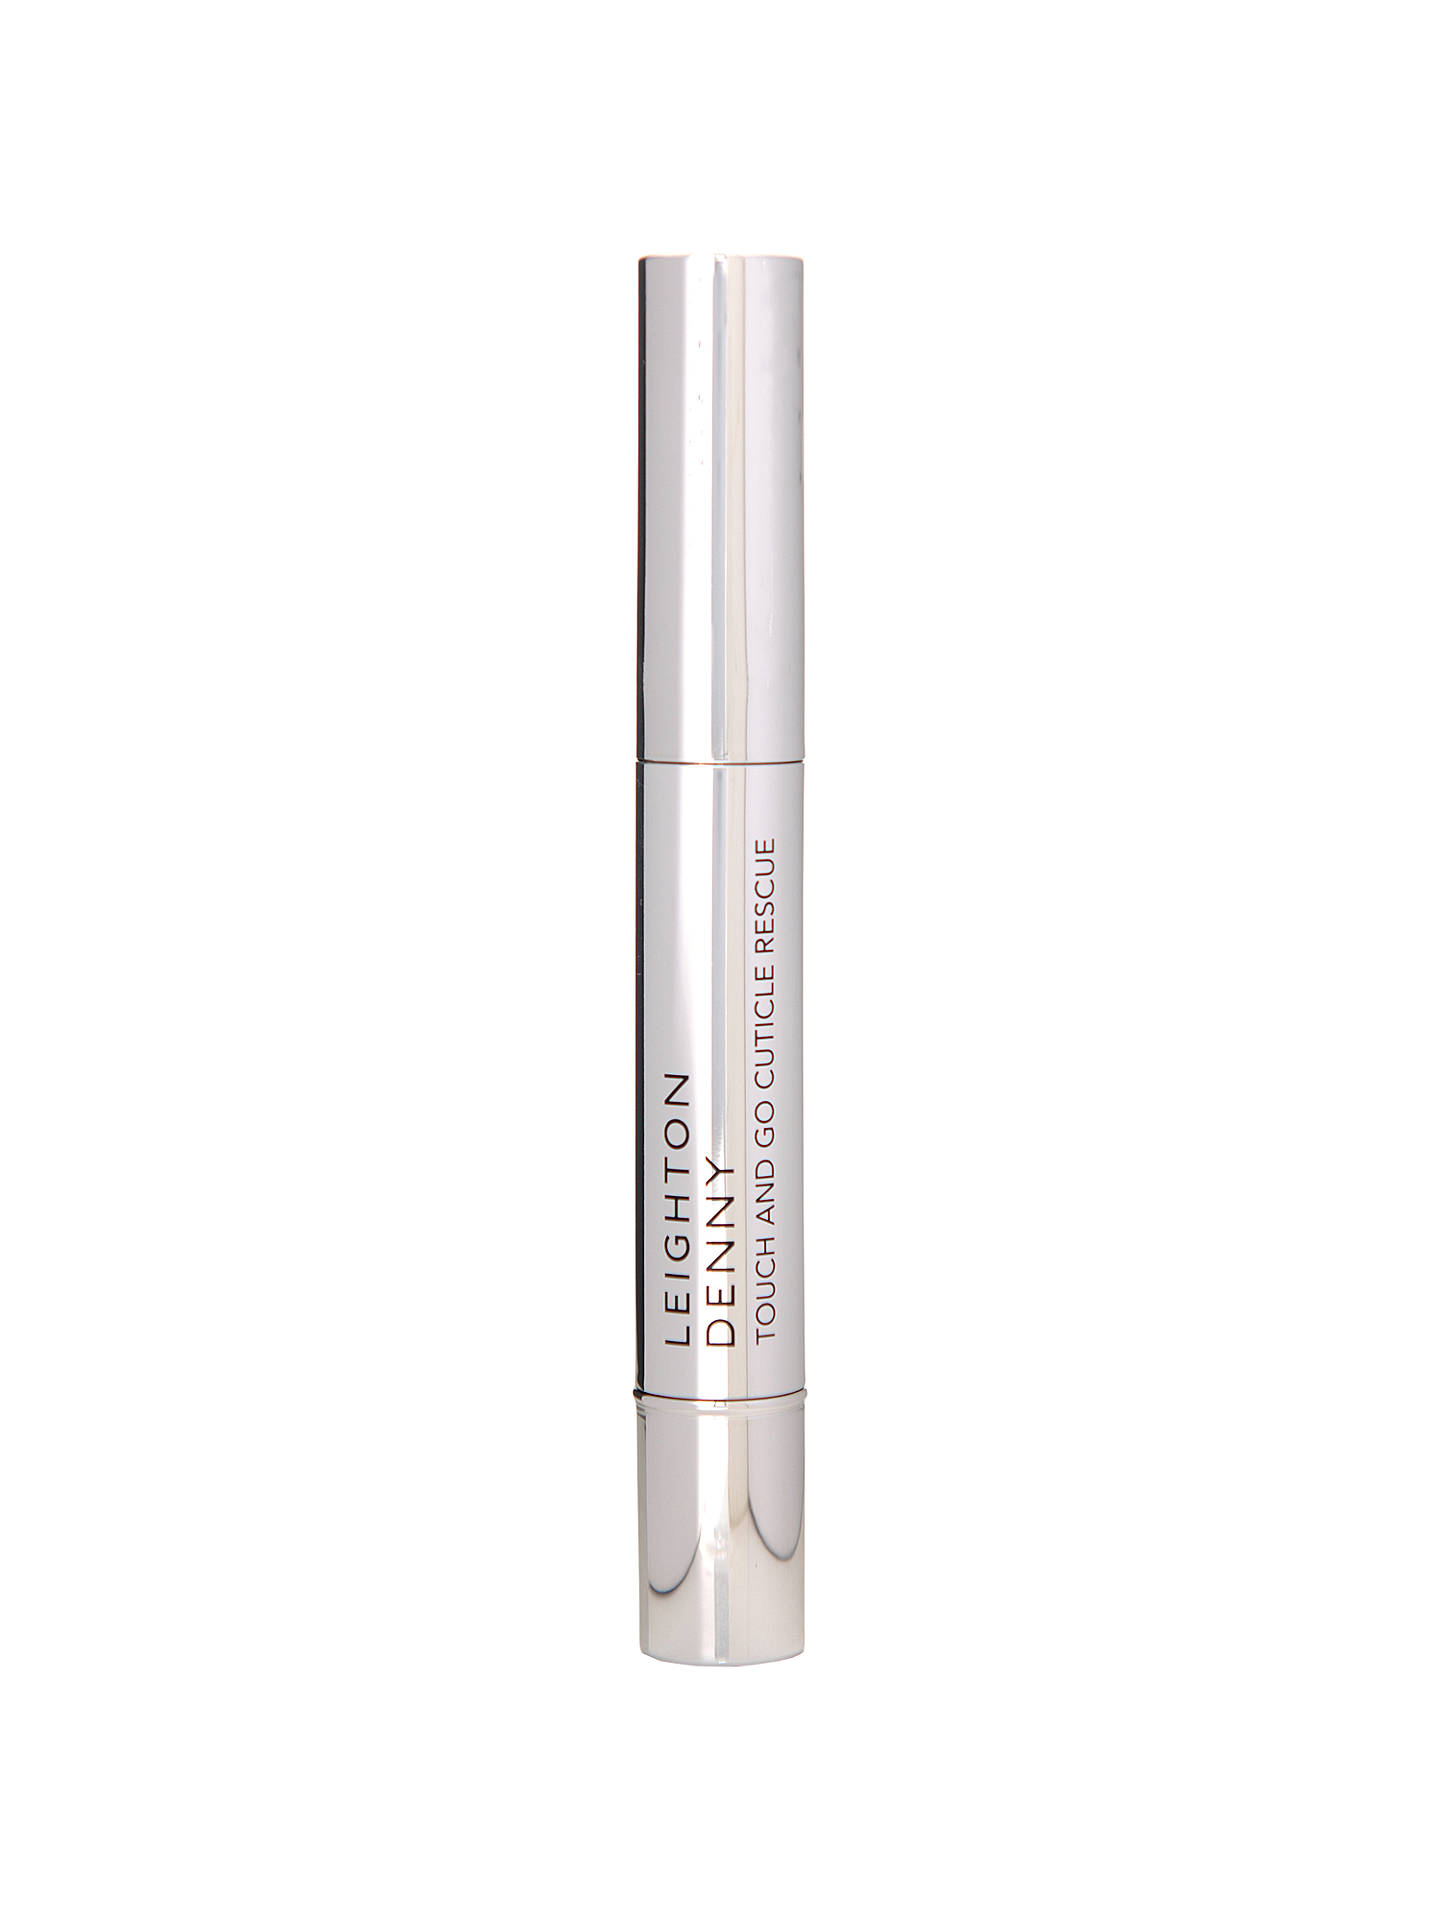 Buy Leighton Denny Slick Tips Touch and Go Cuticle Rescue Pen, 2.9ml Online at johnlewis.com